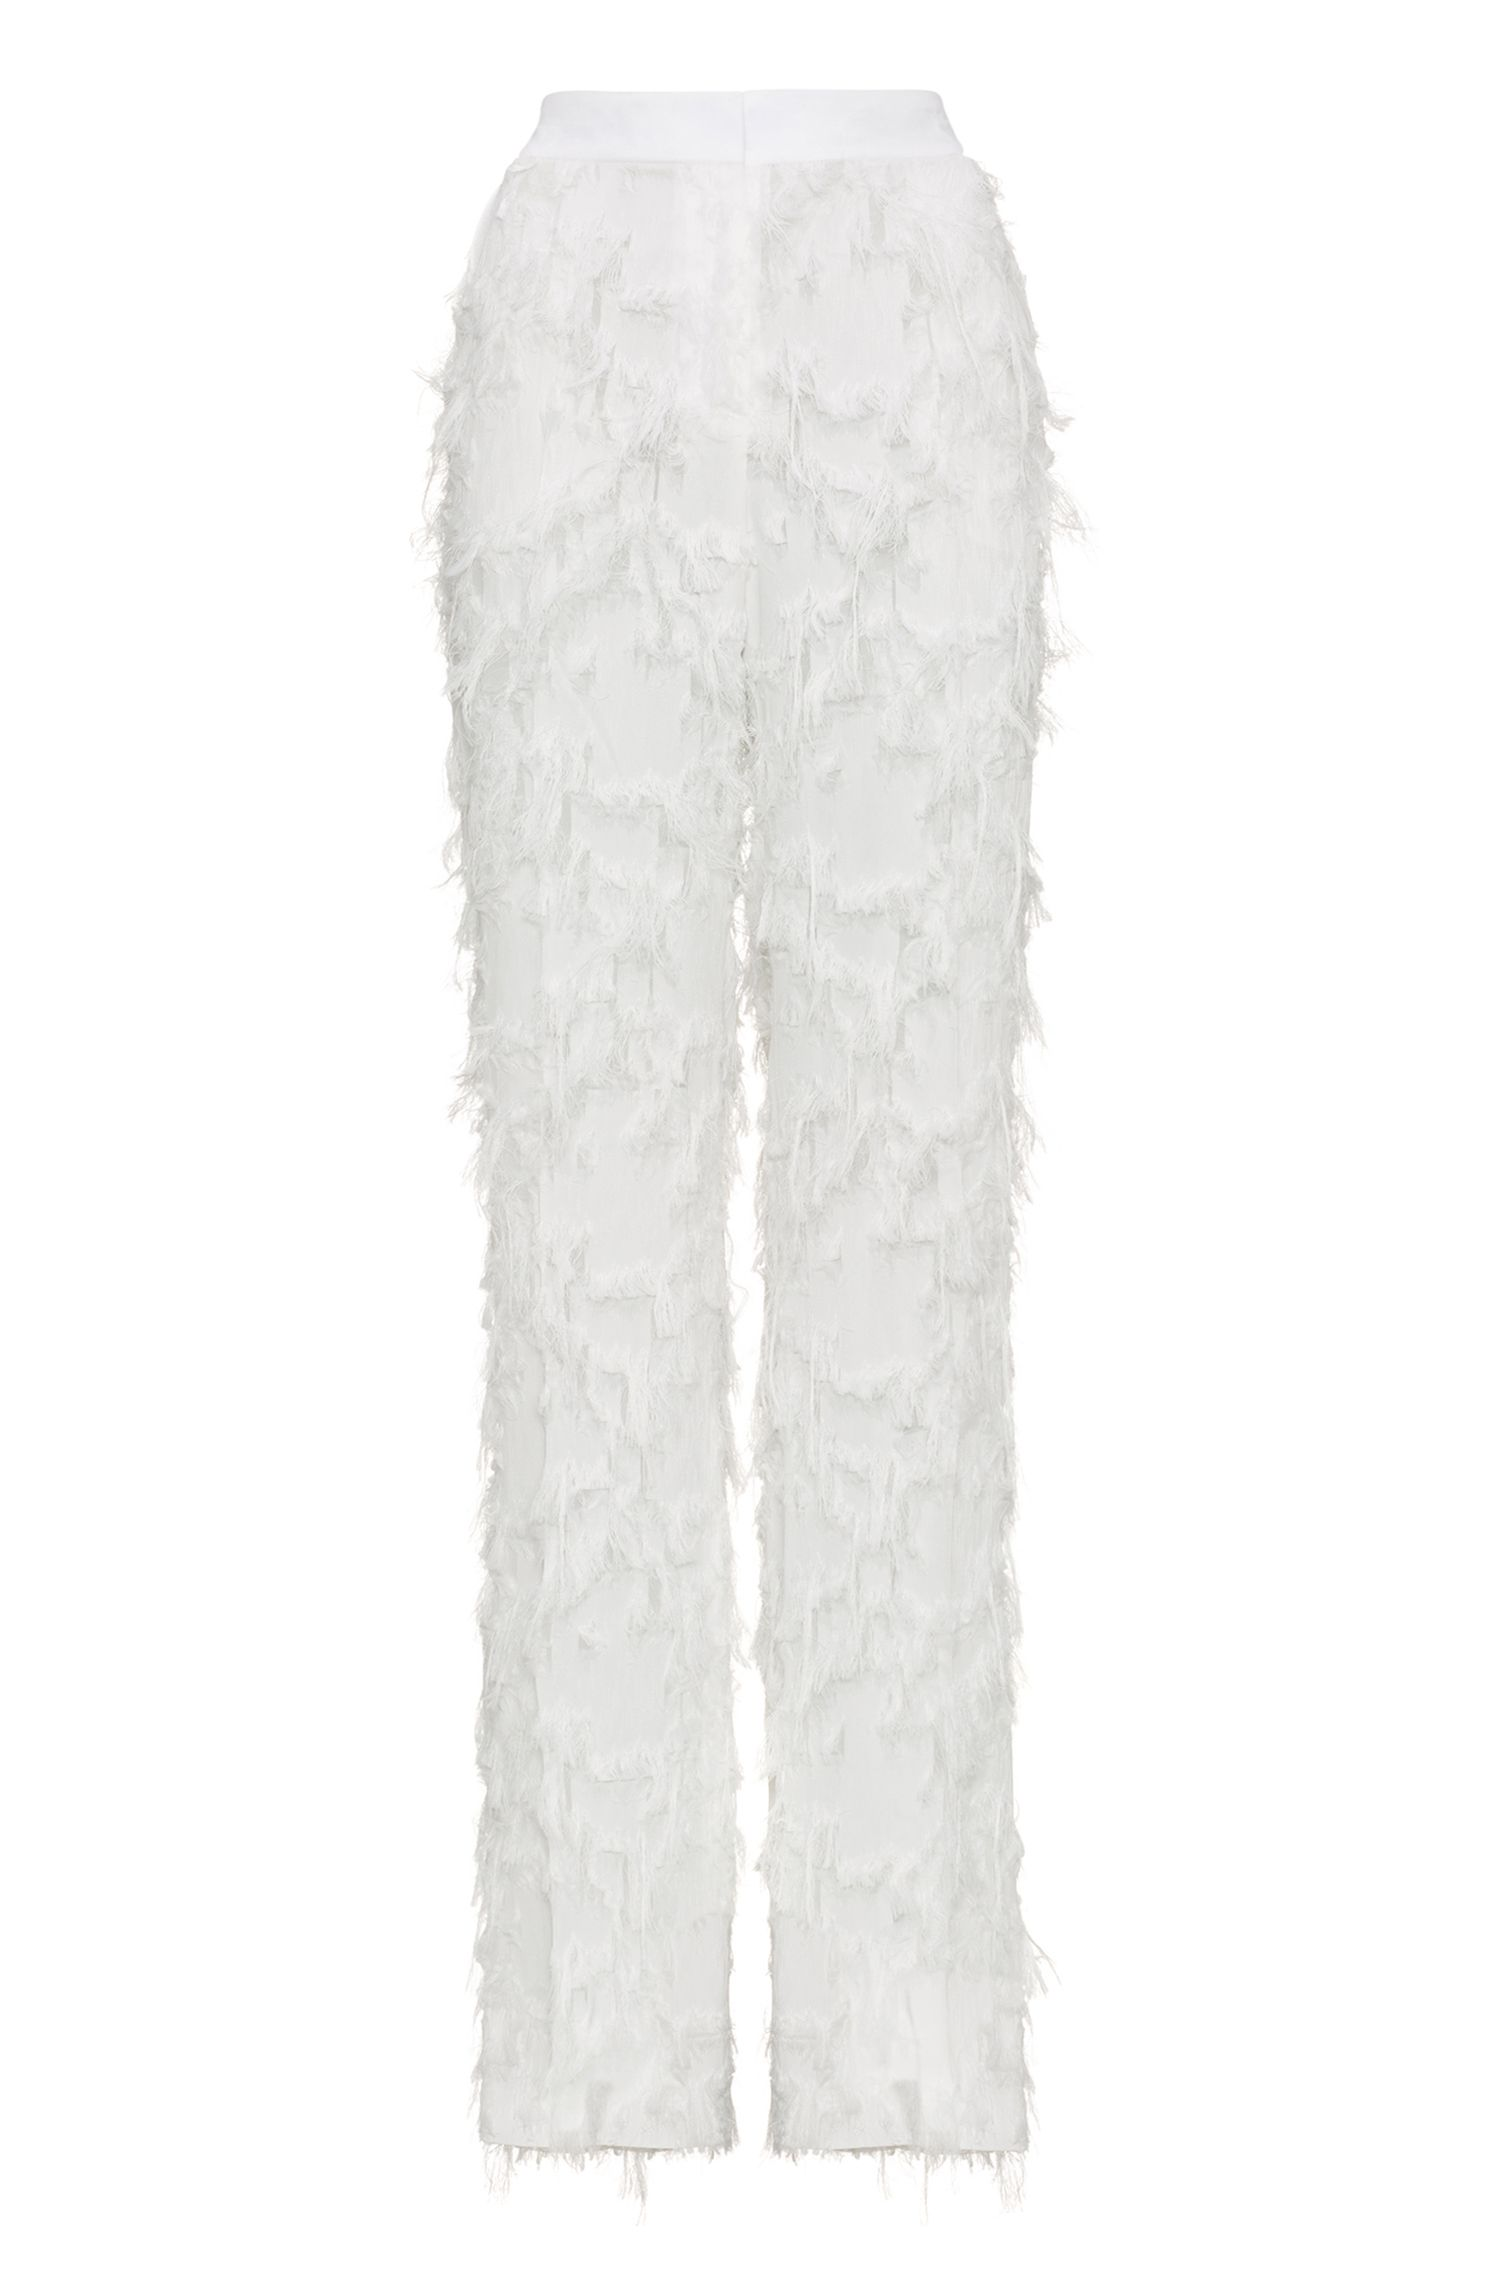 Wide-leg trousers with all-over fringe detailing